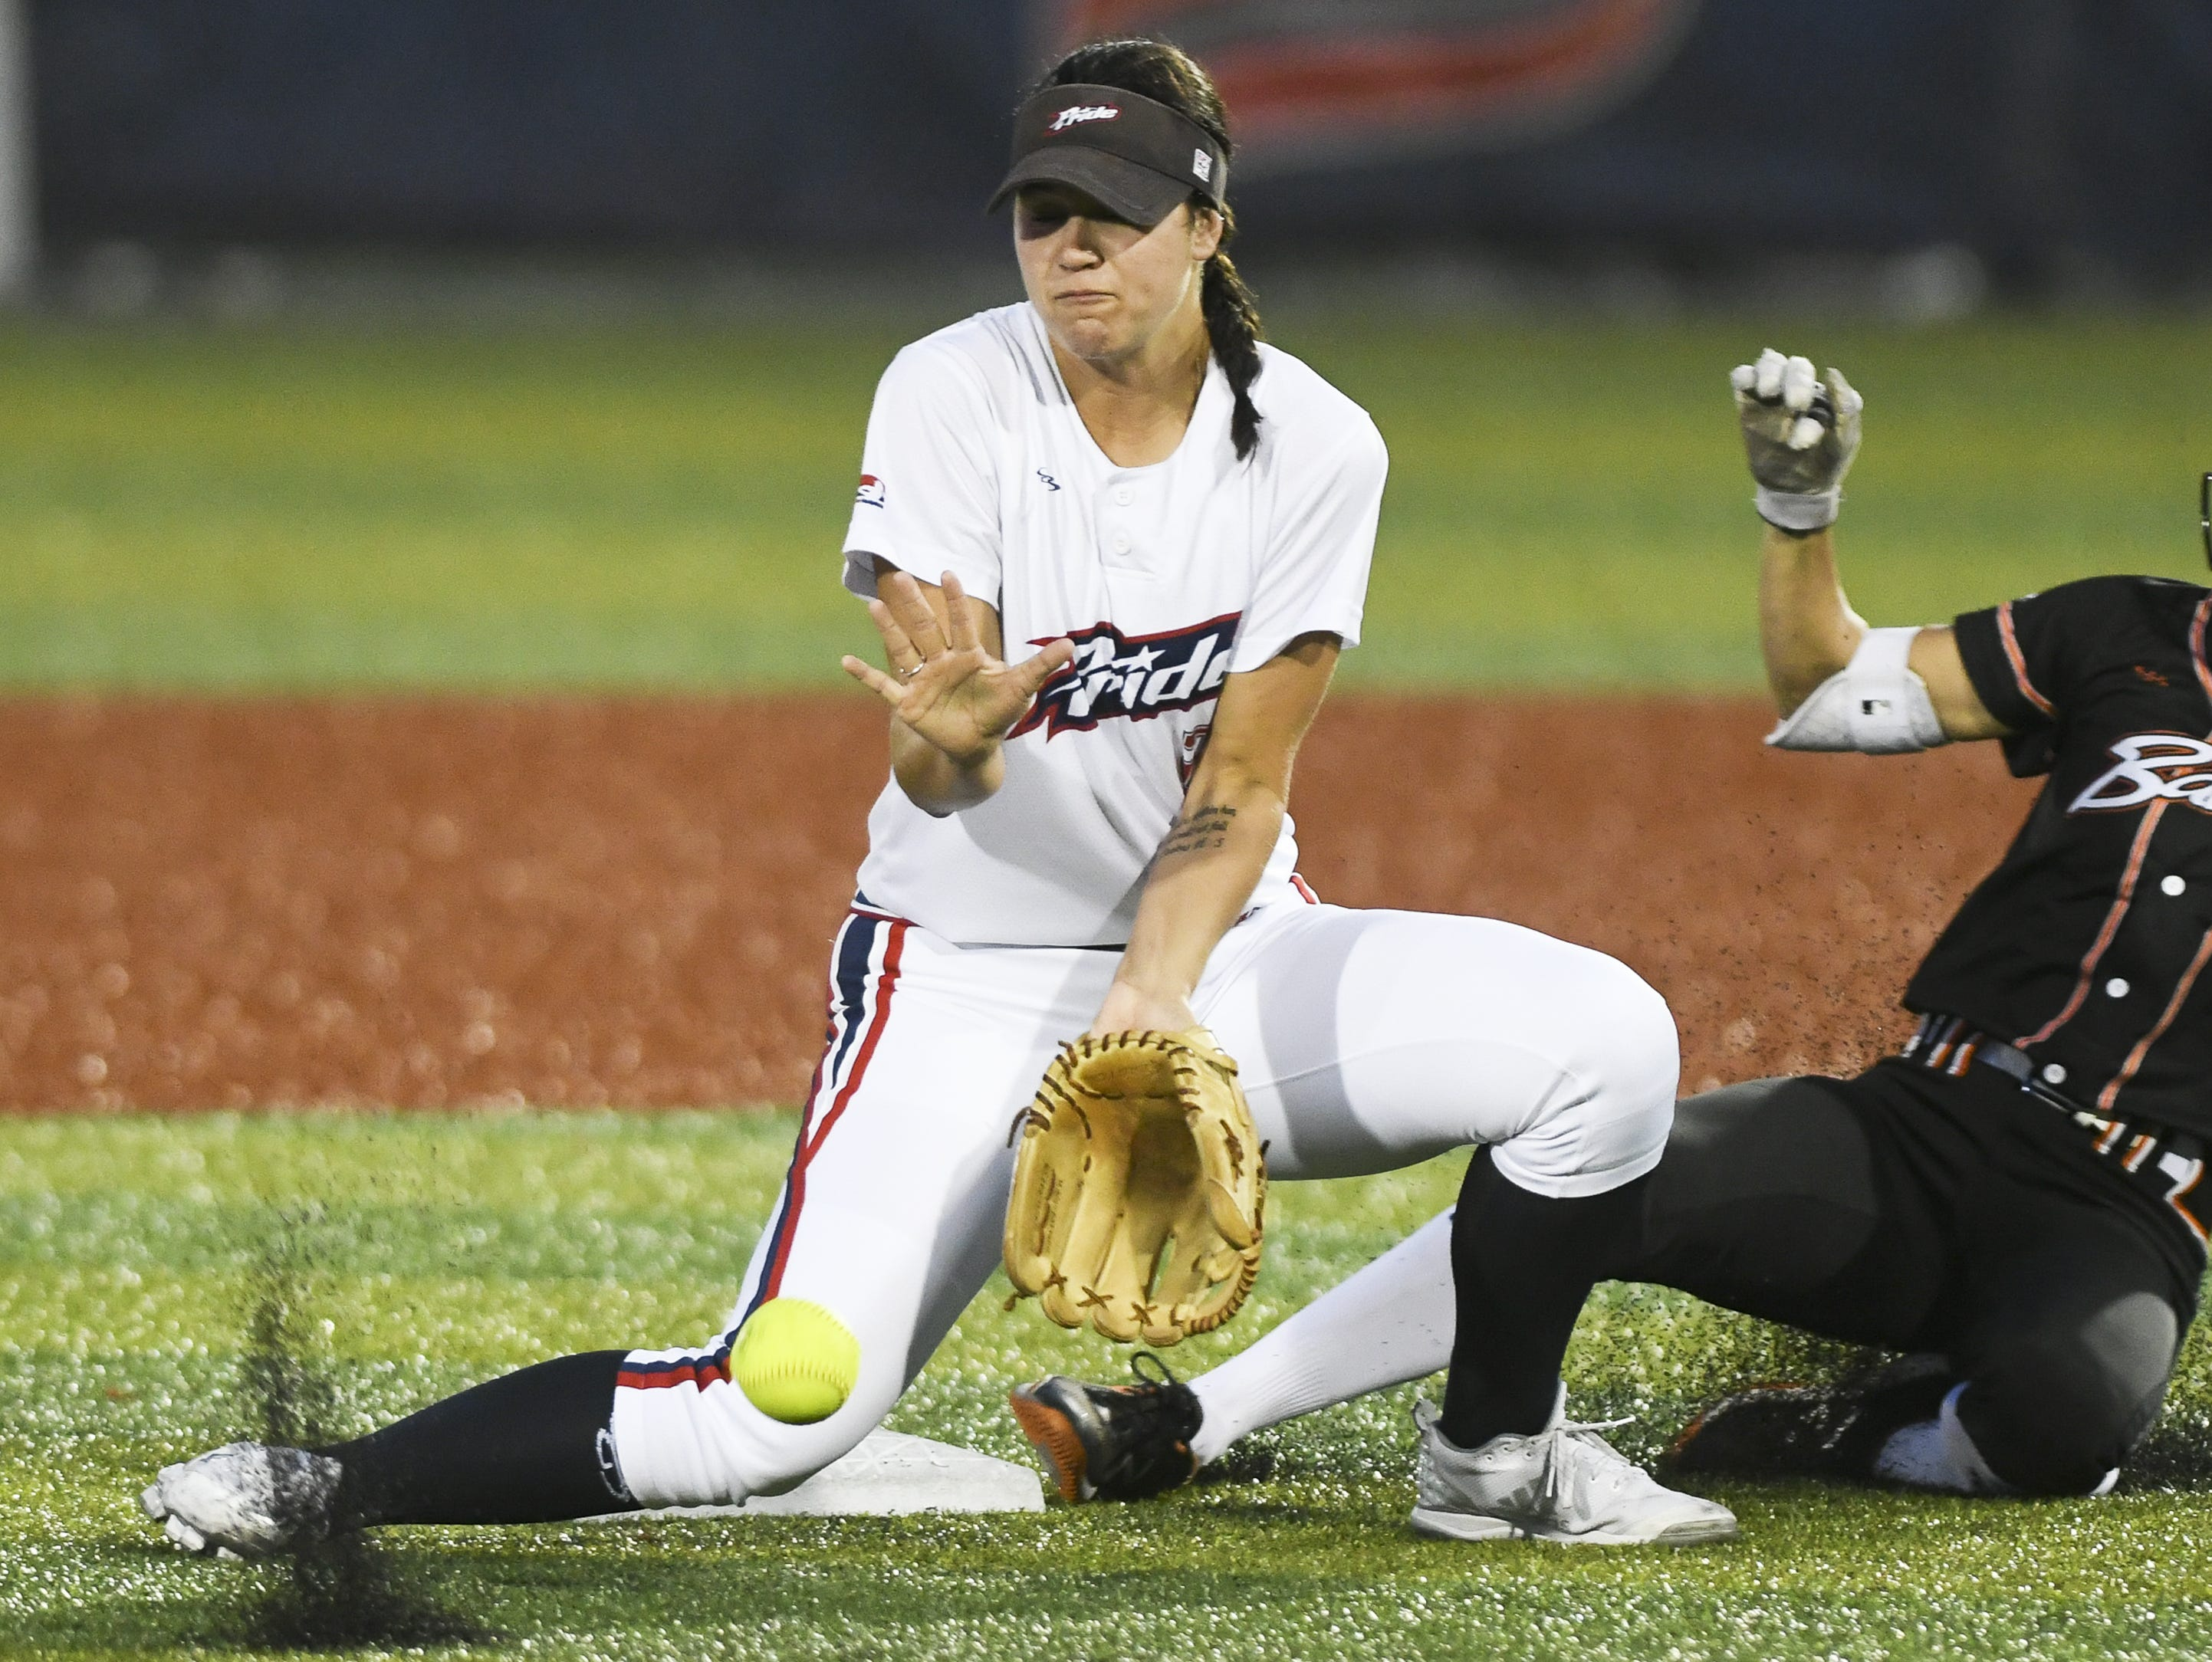 Chicago's Brenna Moss makes it safely into second base as the throw arrives late the Nicole DeWitt of the USSSA Pride during Friday's game in Viera.